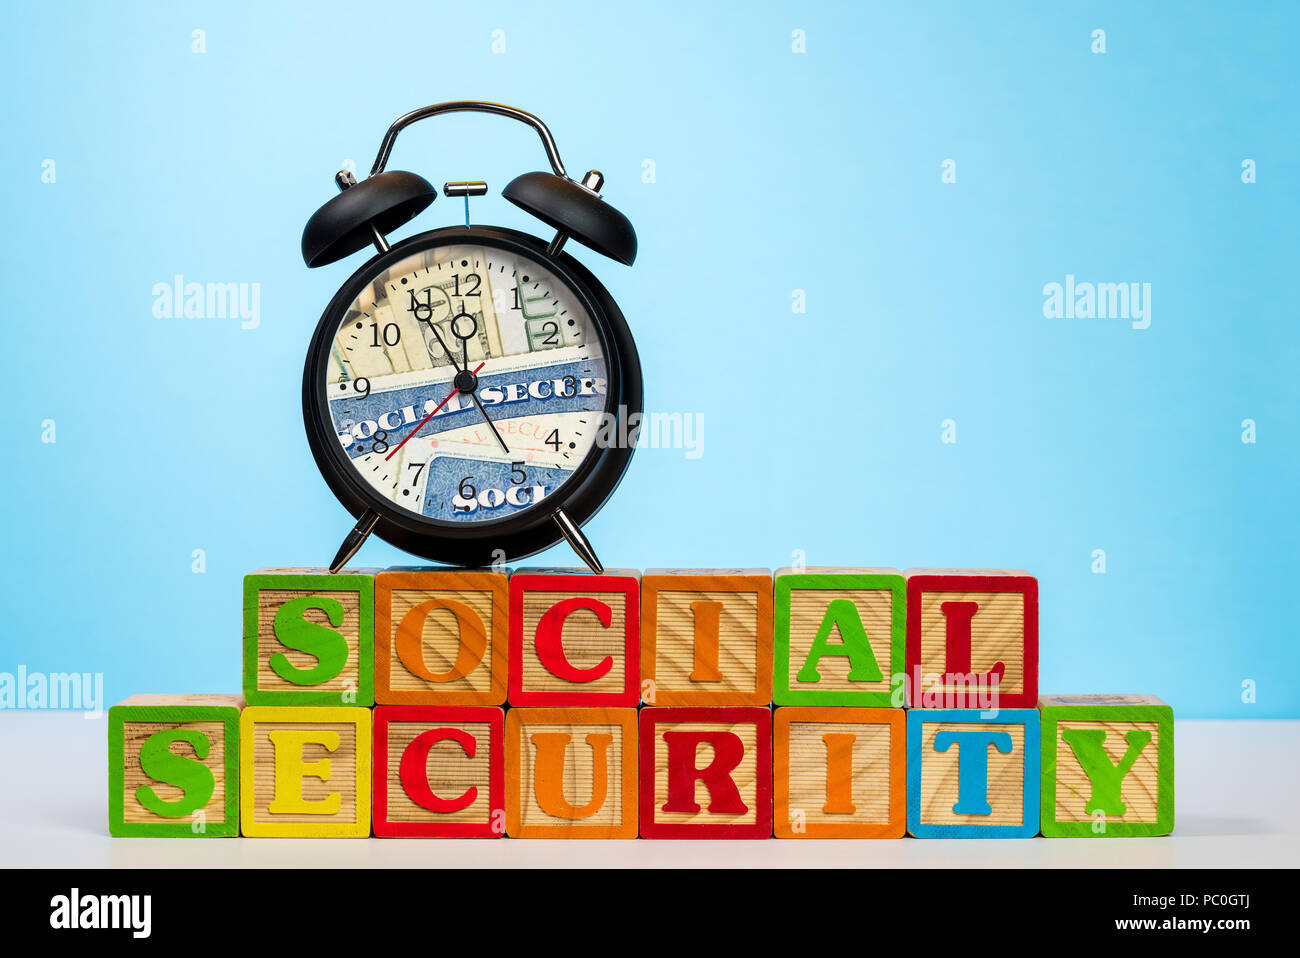 Social Reform Stock Photos & Social Reform Stock Images - Alamy